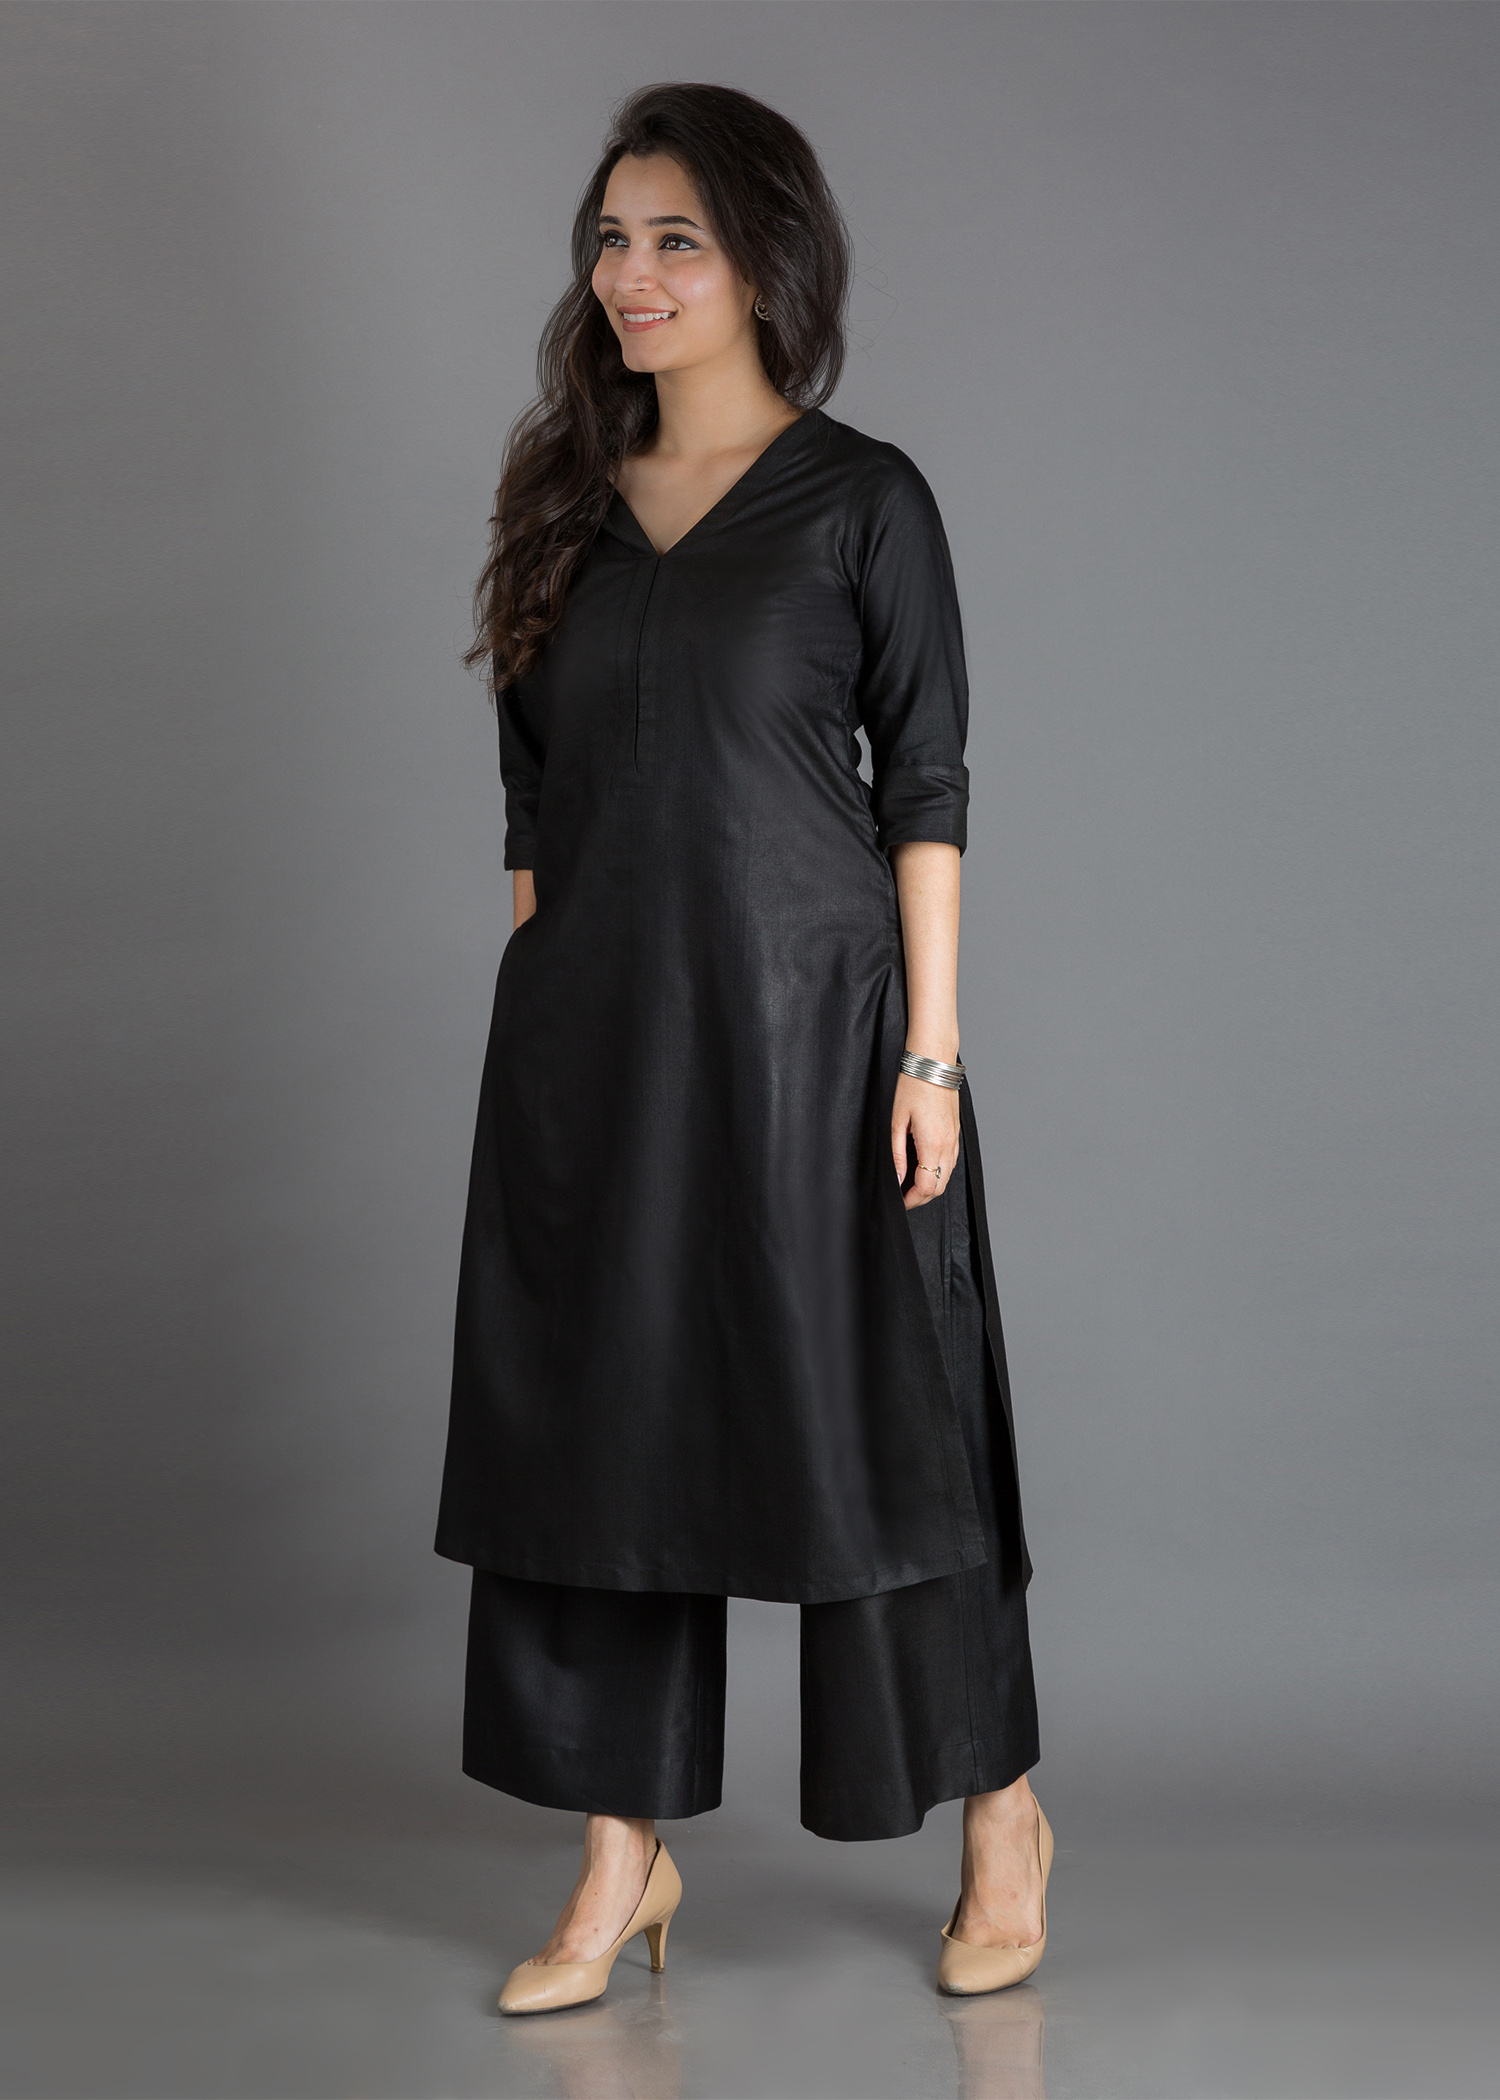 Black Silk Cotton Kurta - V Neck